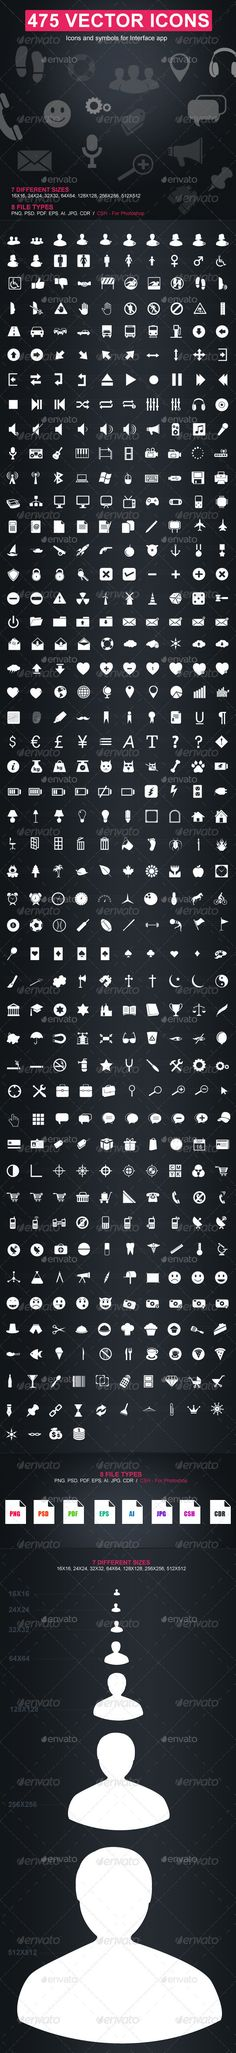 475 Vector Icons - Web Icons